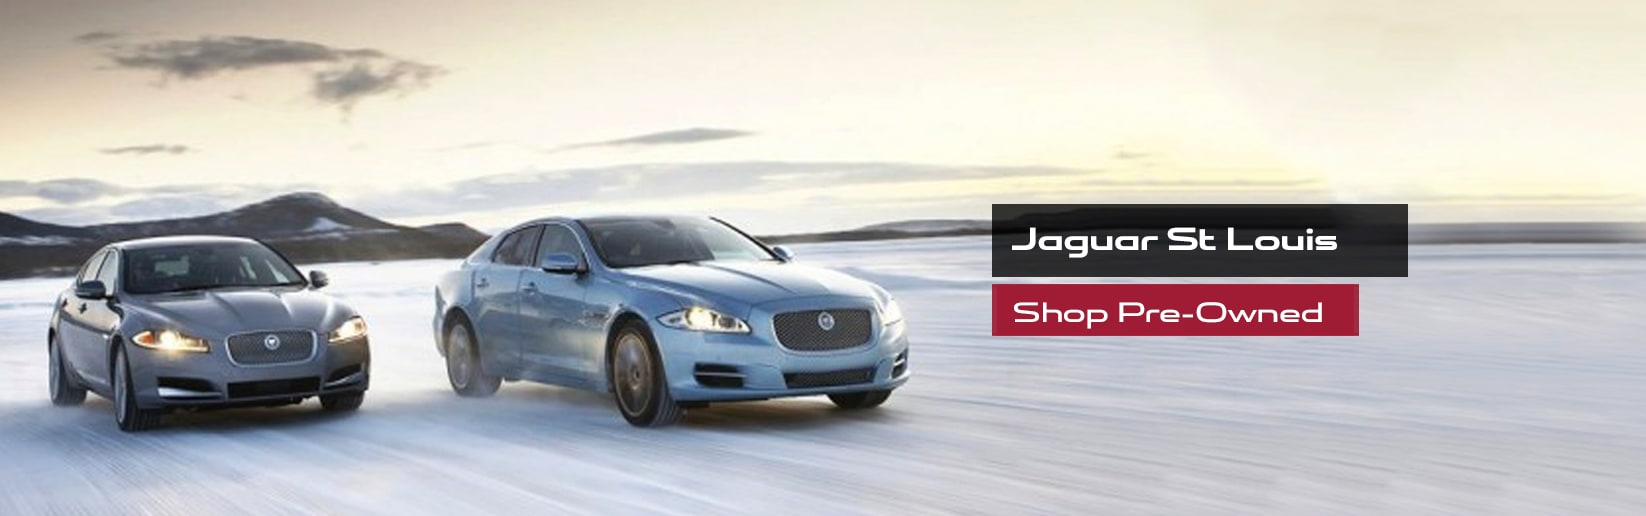 Plaza Jaguar St Louis New Used Jaguar St Louis Creve Coeur